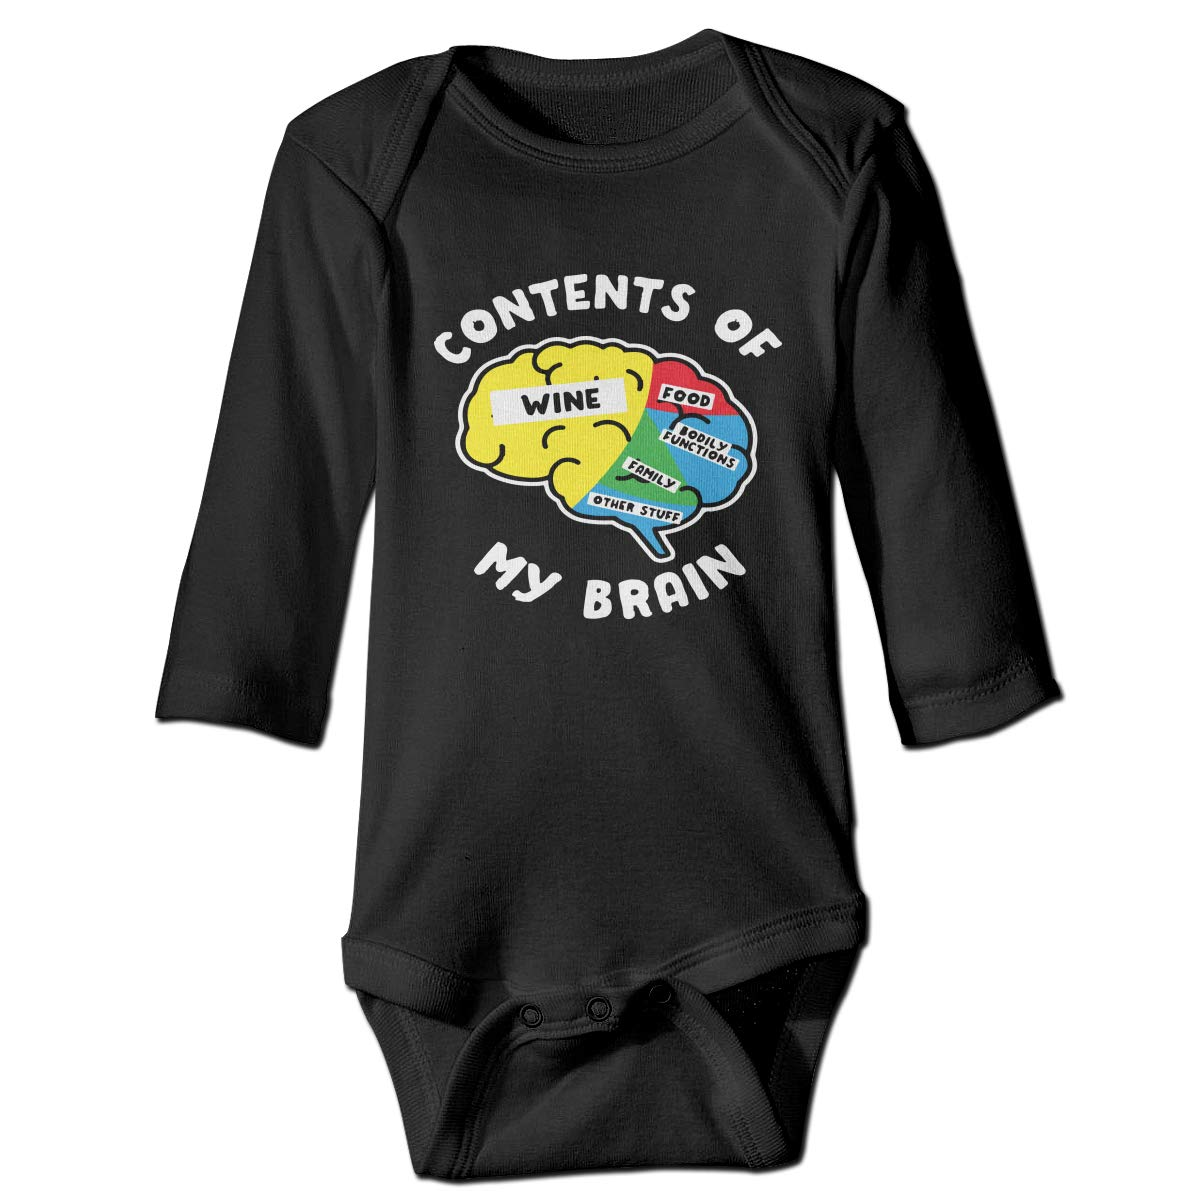 Suit 6-24 Months CZDedgQ99 Baby Boys Contents of My Brain Long Sleeve Climbing Clothes Romper Jumpsuit